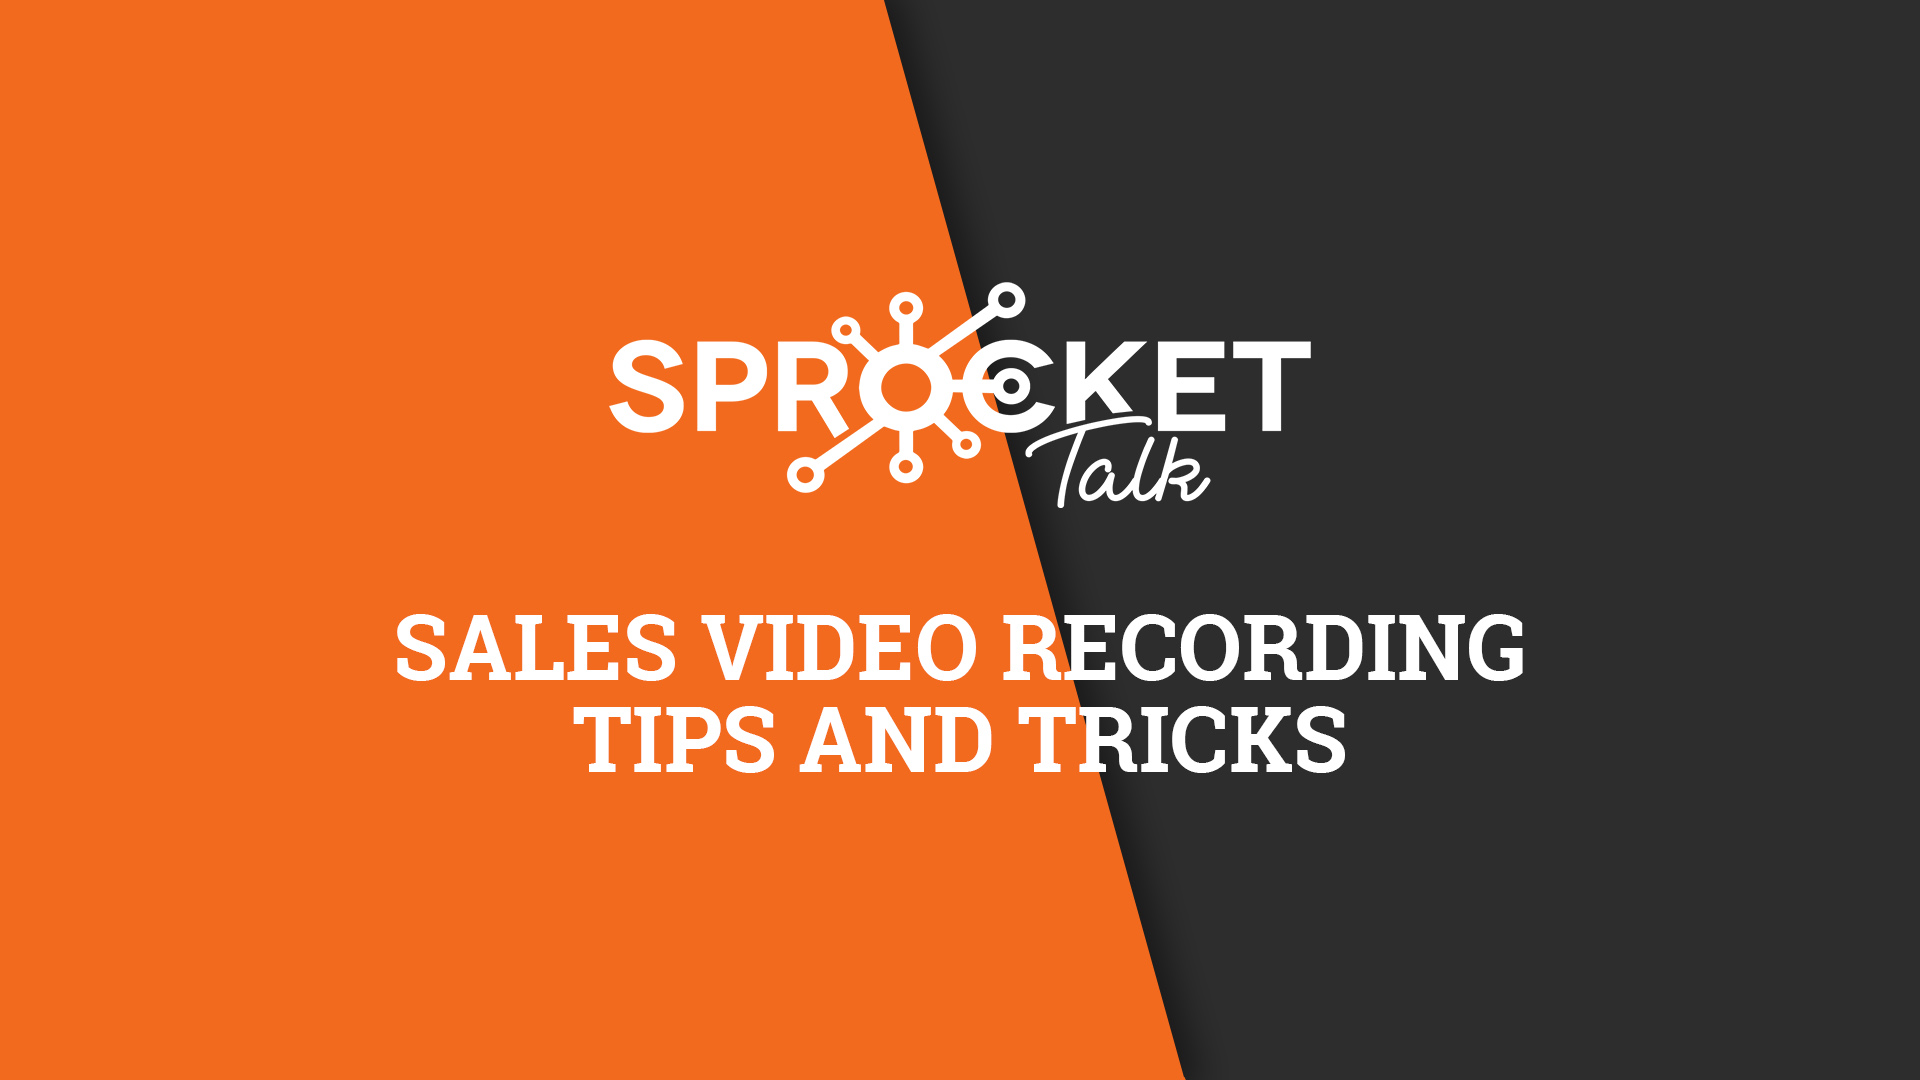 Sales Video Recording Tips And Tricks